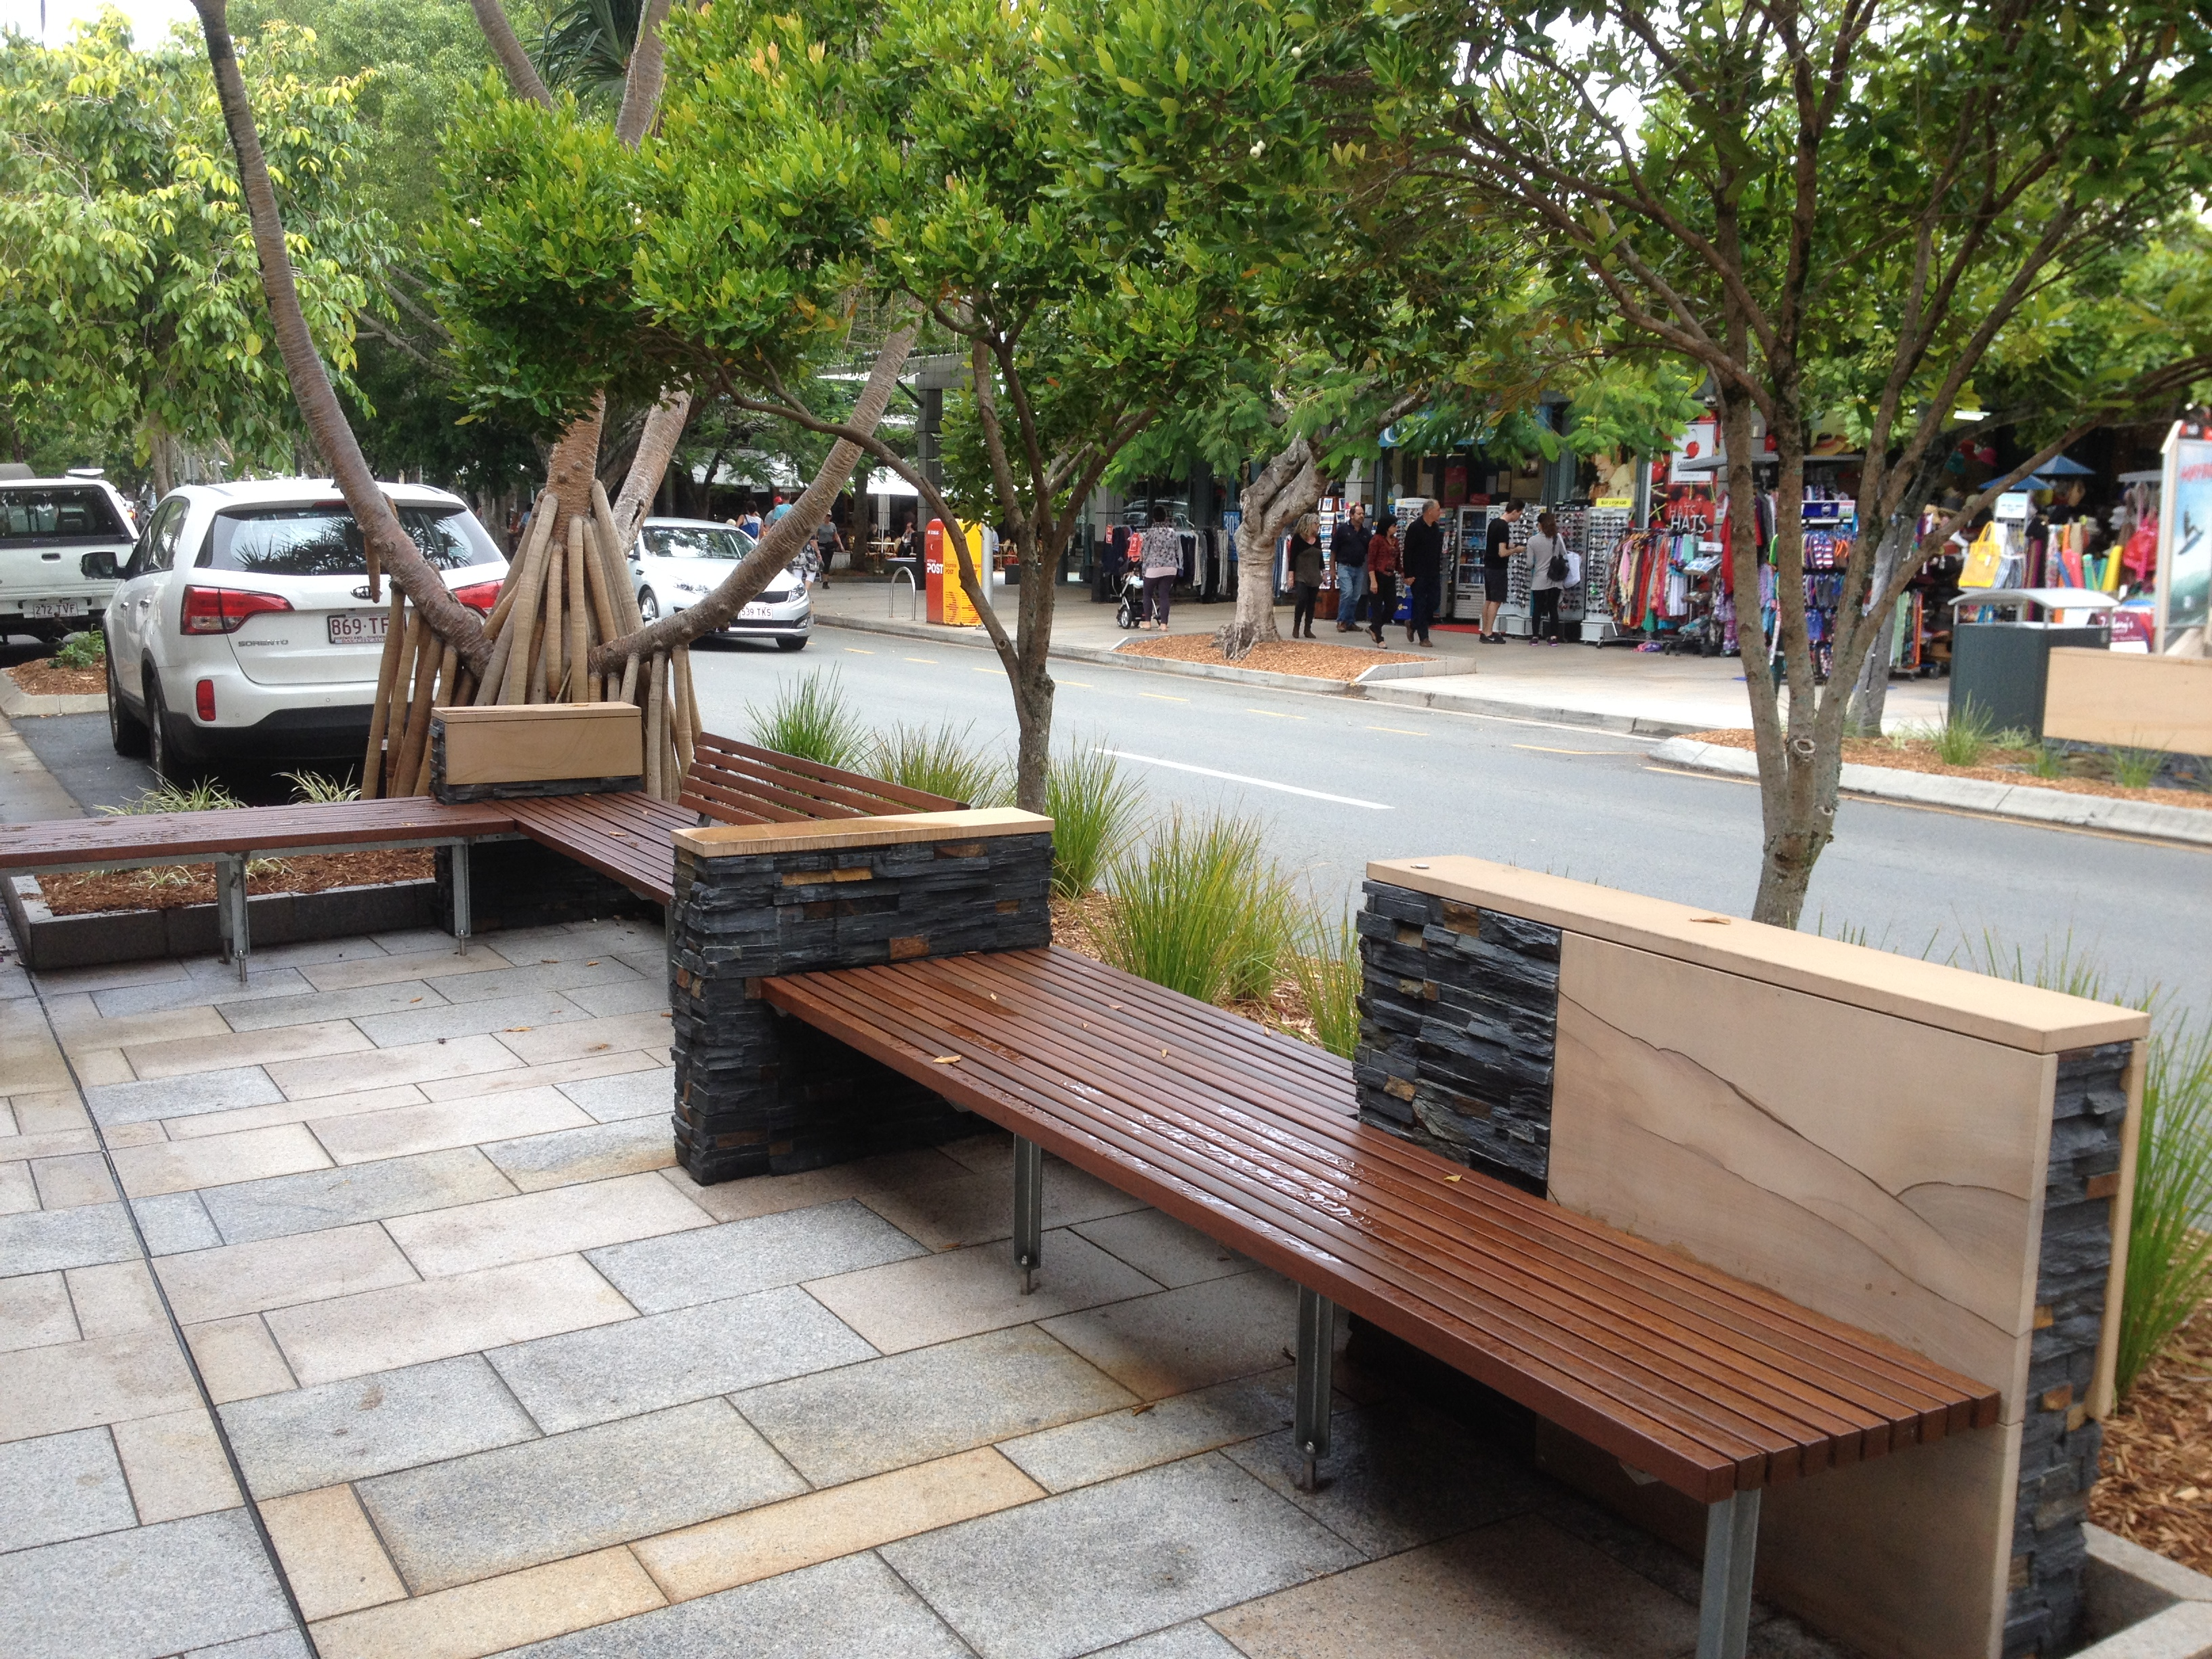 File:Street benches in Hastings Street, Noosa Heads.JPG ...